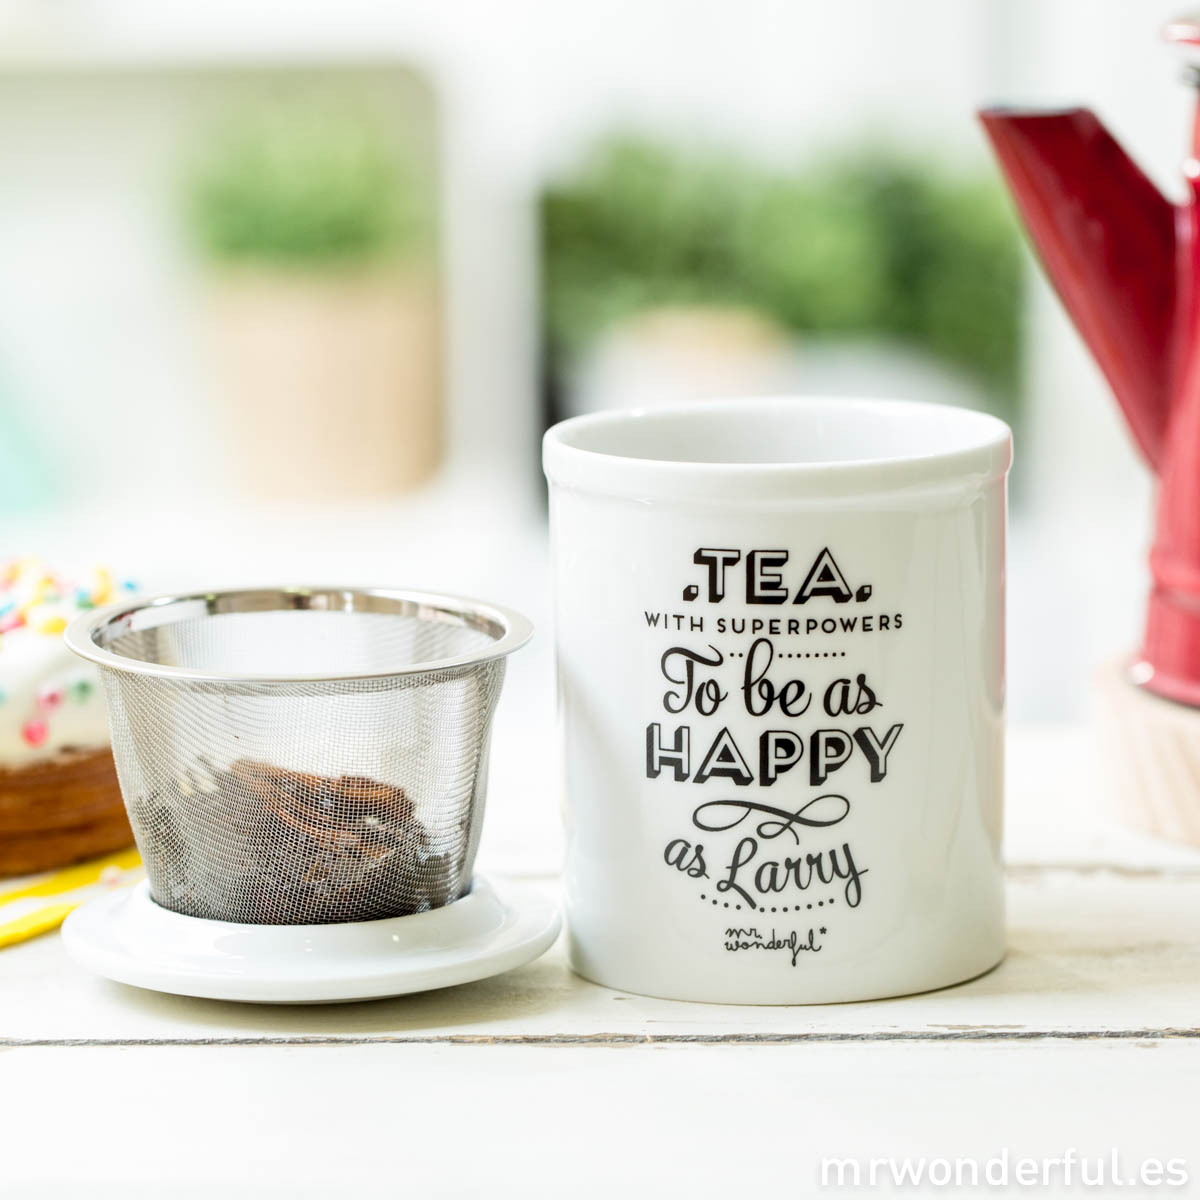 mrwonderful_Mug to−basic_WON86_Be-as-happy-as-larry-10